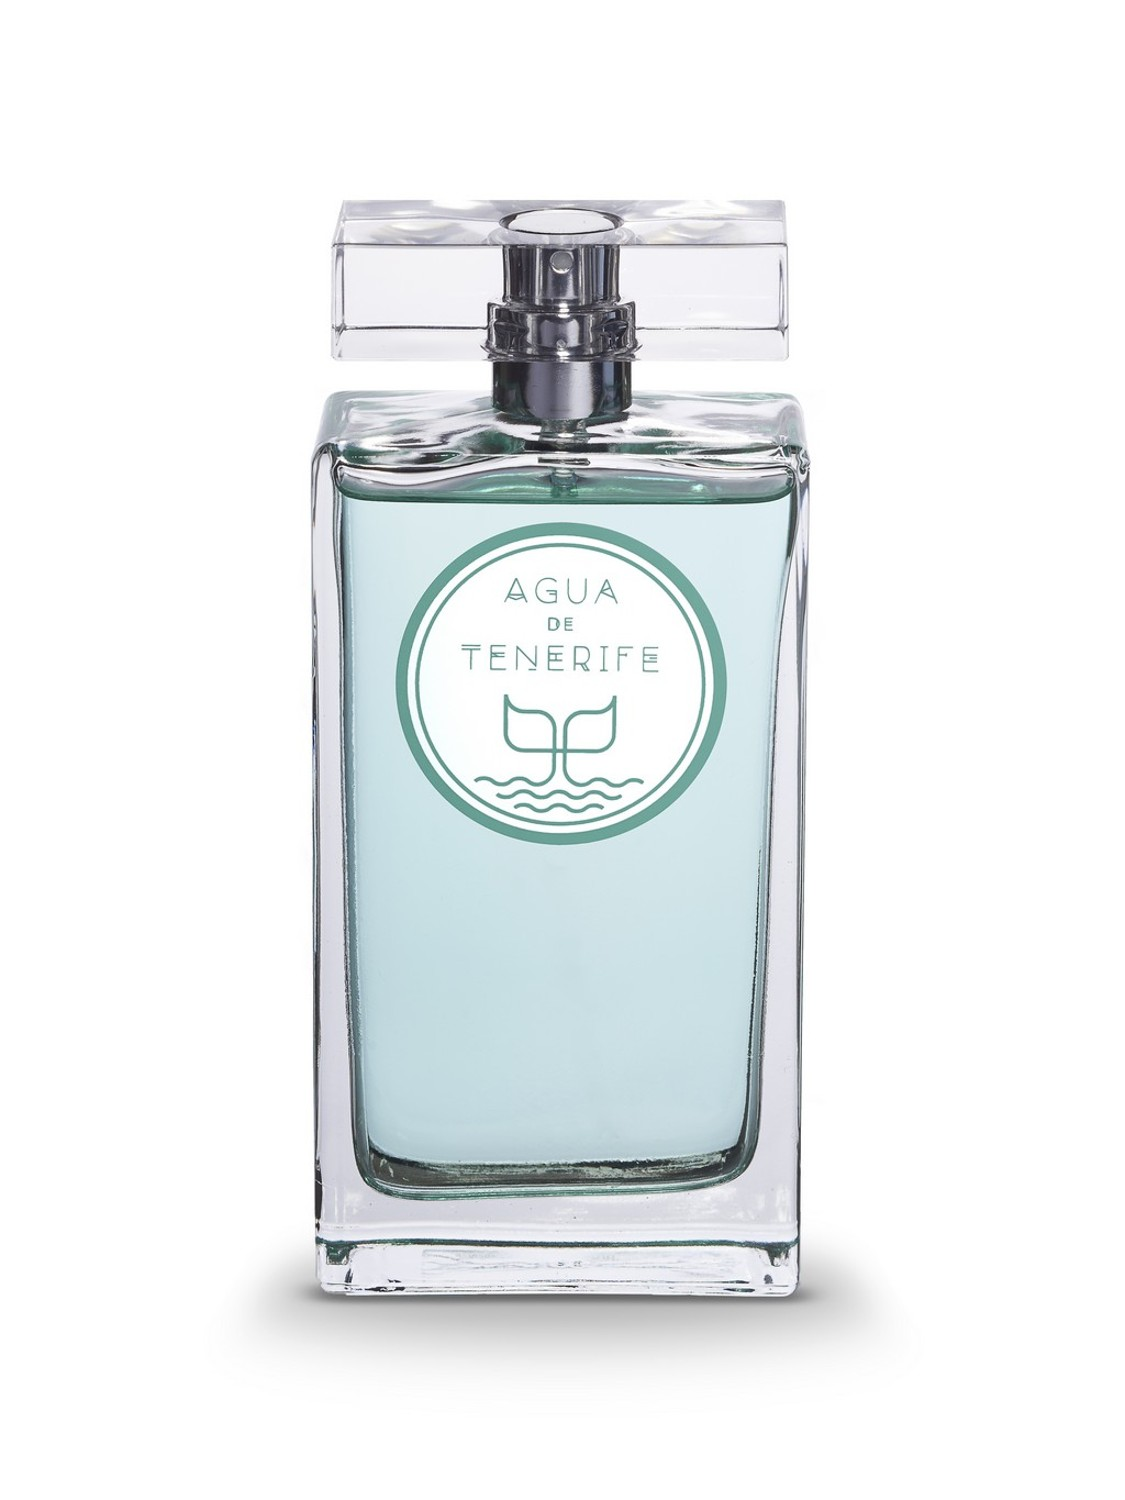 shop Agua de Tenerife  LAS FRAGANCIAS DE LA ISLA: Playa Paraiso Eau de Parfum 100 ml.